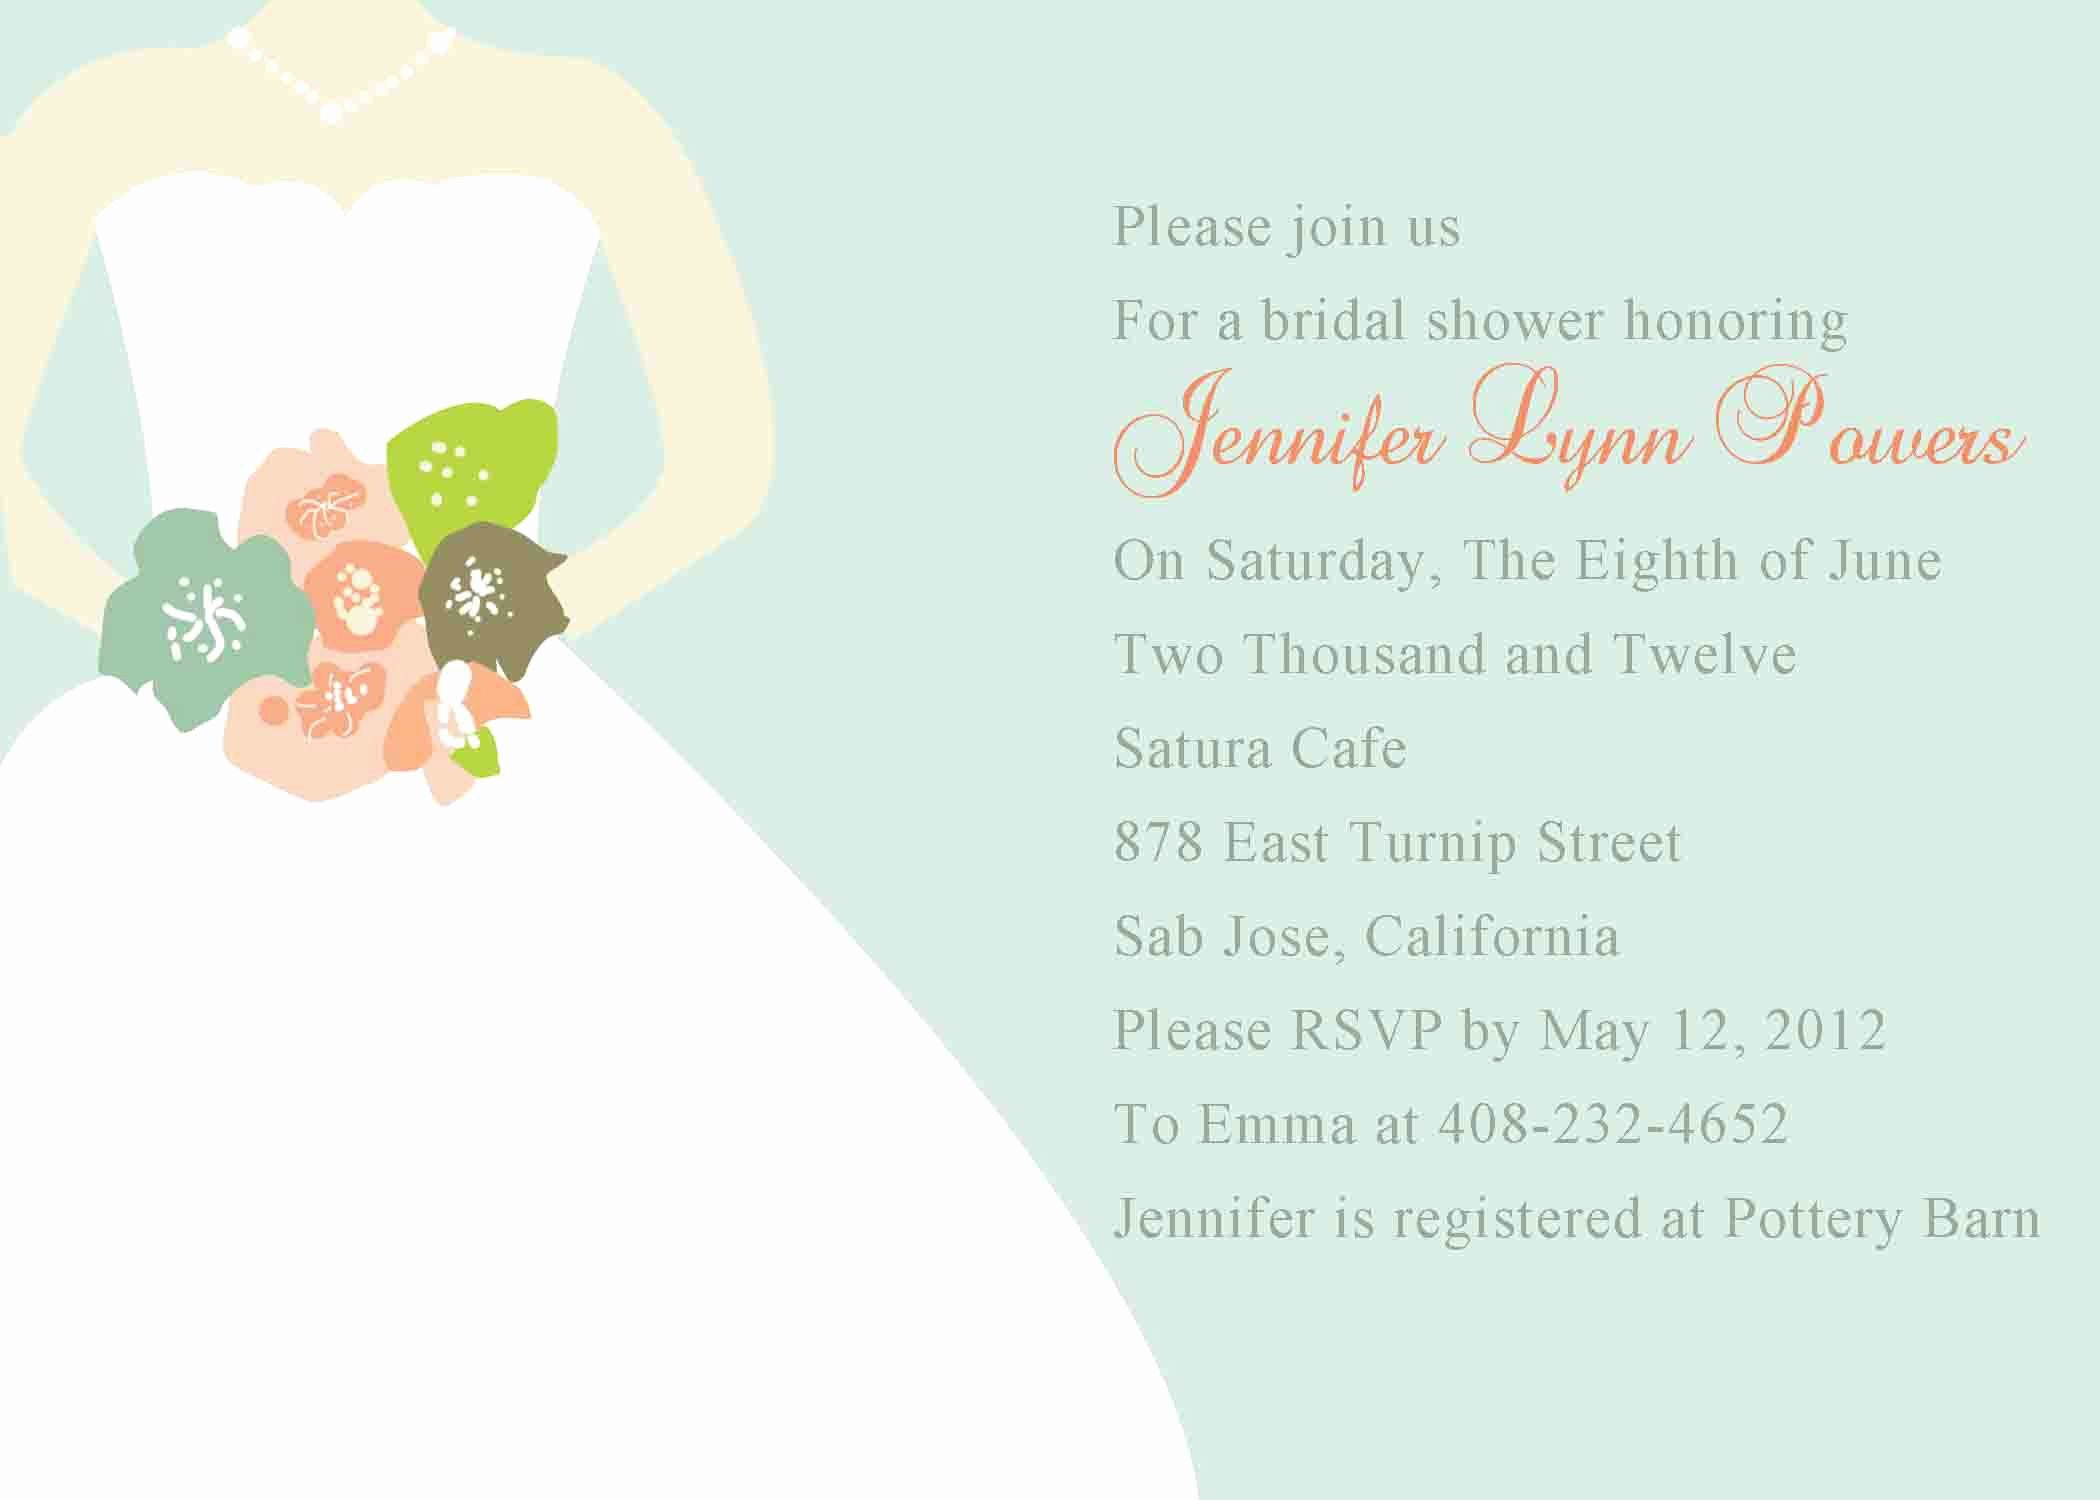 Bridal Shower Invitations Template Unique Bridal Shower Invitation Templates Bridal Shower